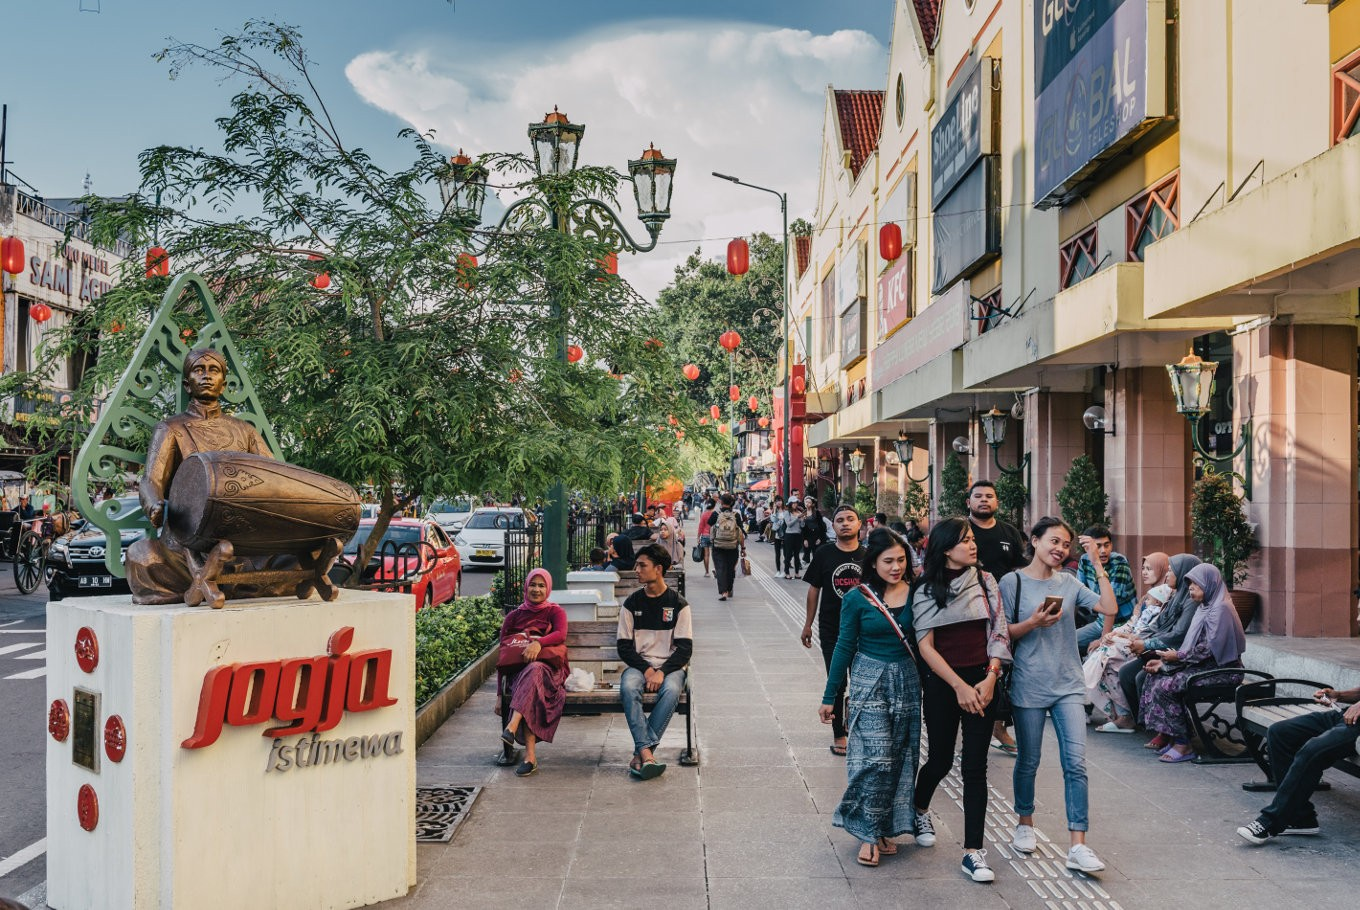 Yogyakarta to implement car-free policy at iconic Jl. Malioboro